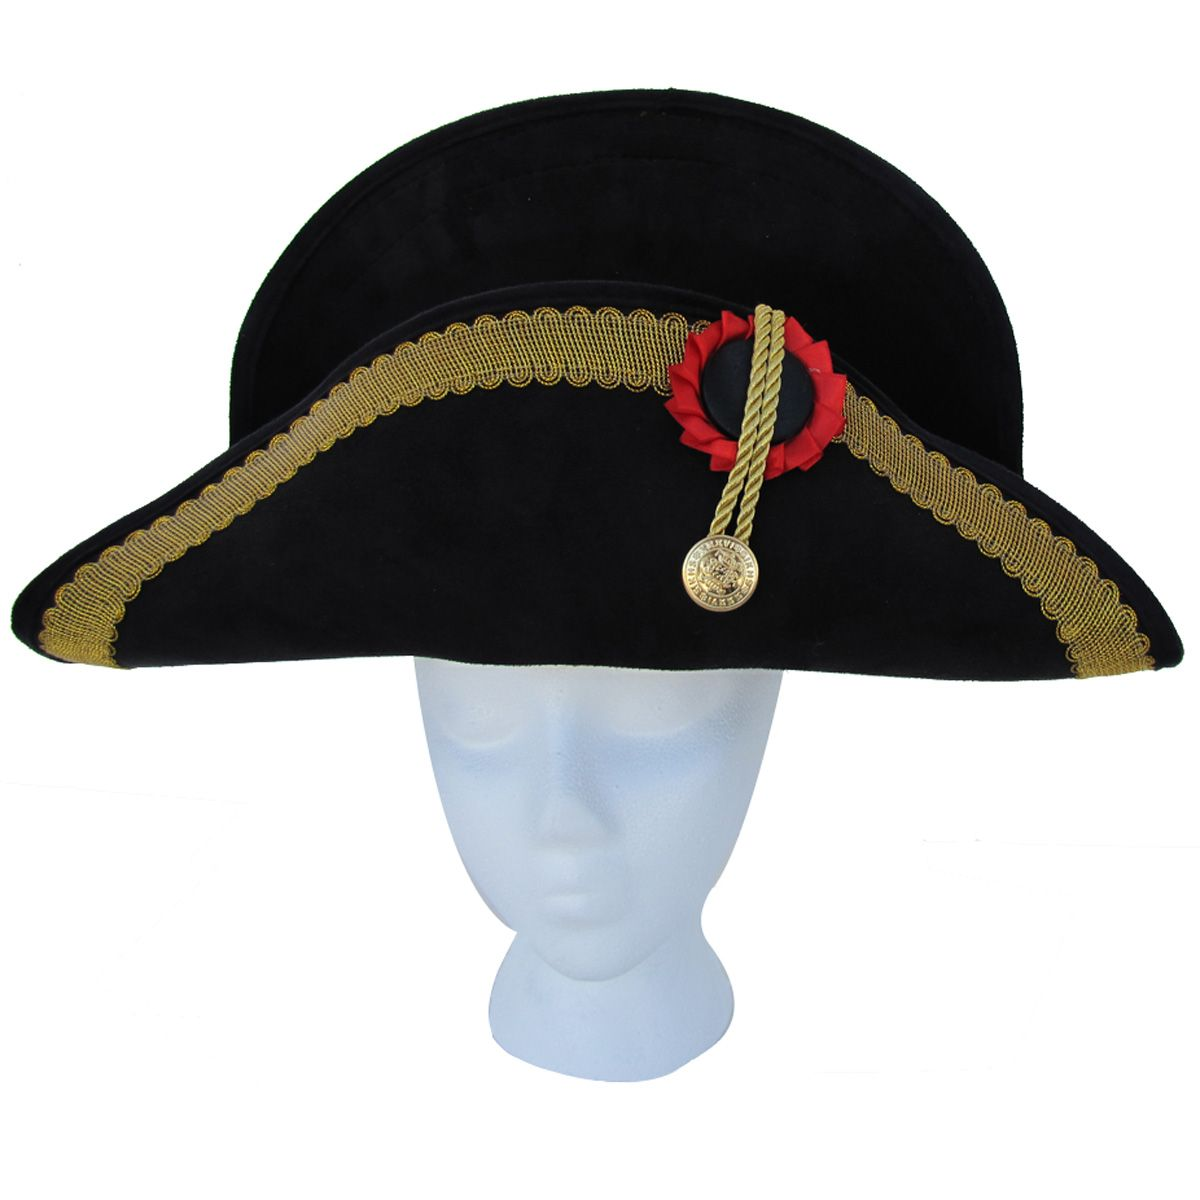 French army or admiral bicorn 18TH CENTURY NAPOLEON HAT pirate ... bf1c444fdfe